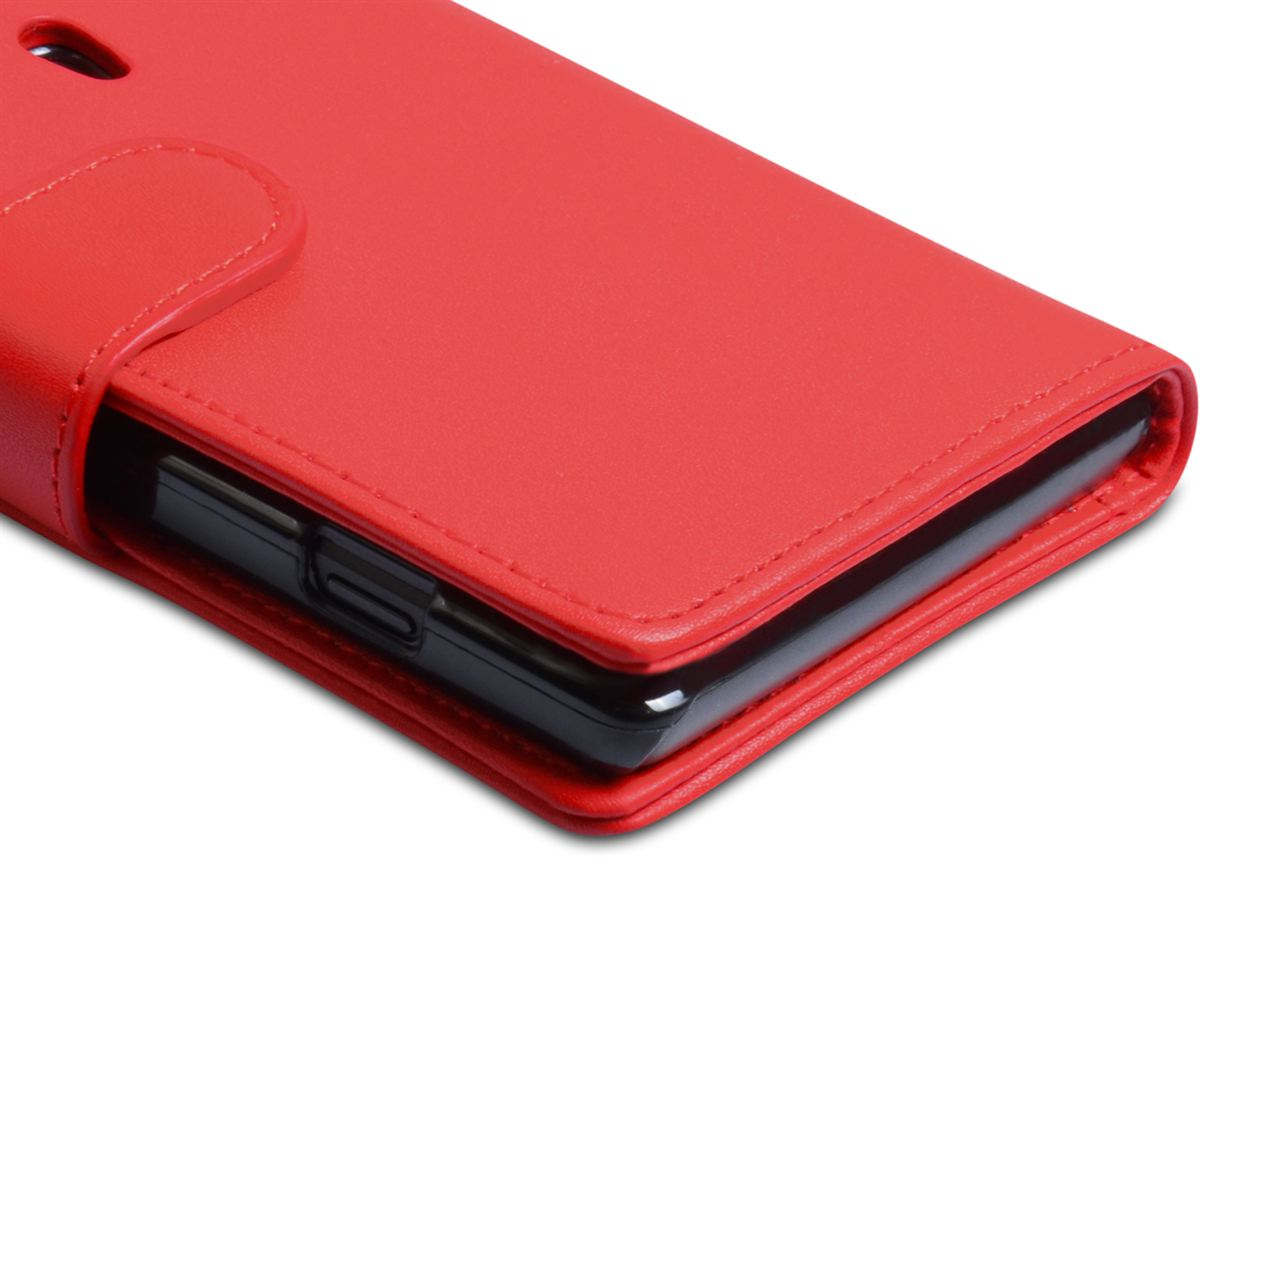 YouSave Accessories Sony Xperia SP Leather-Effect Wallet Case - Red